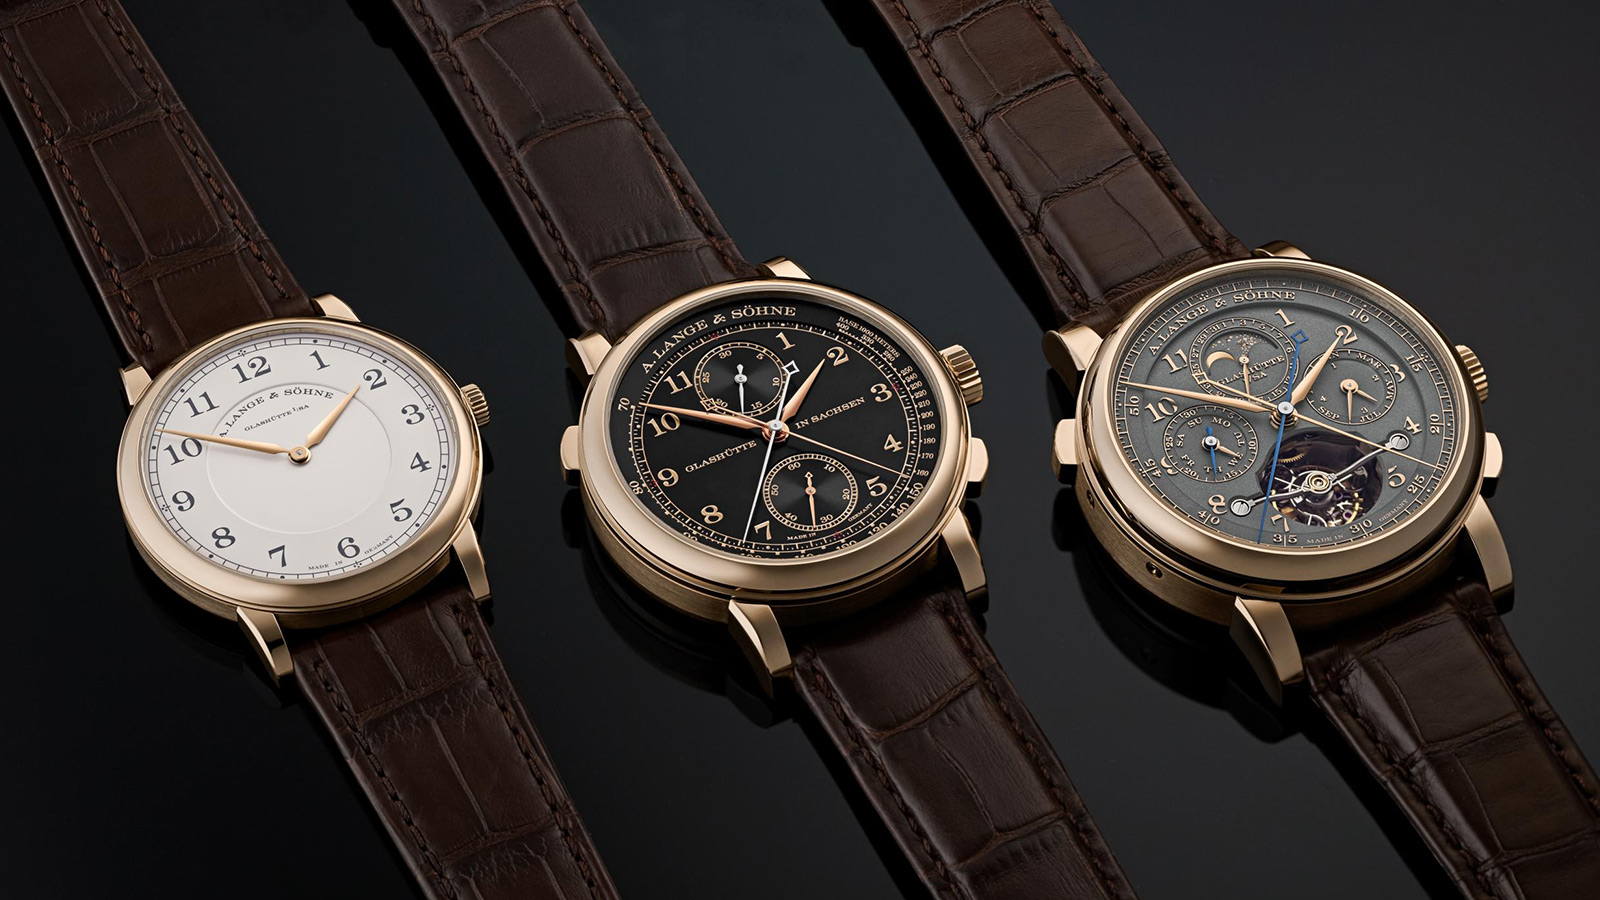 A. Lange & Söhne Homage to F.A. Lange Collection